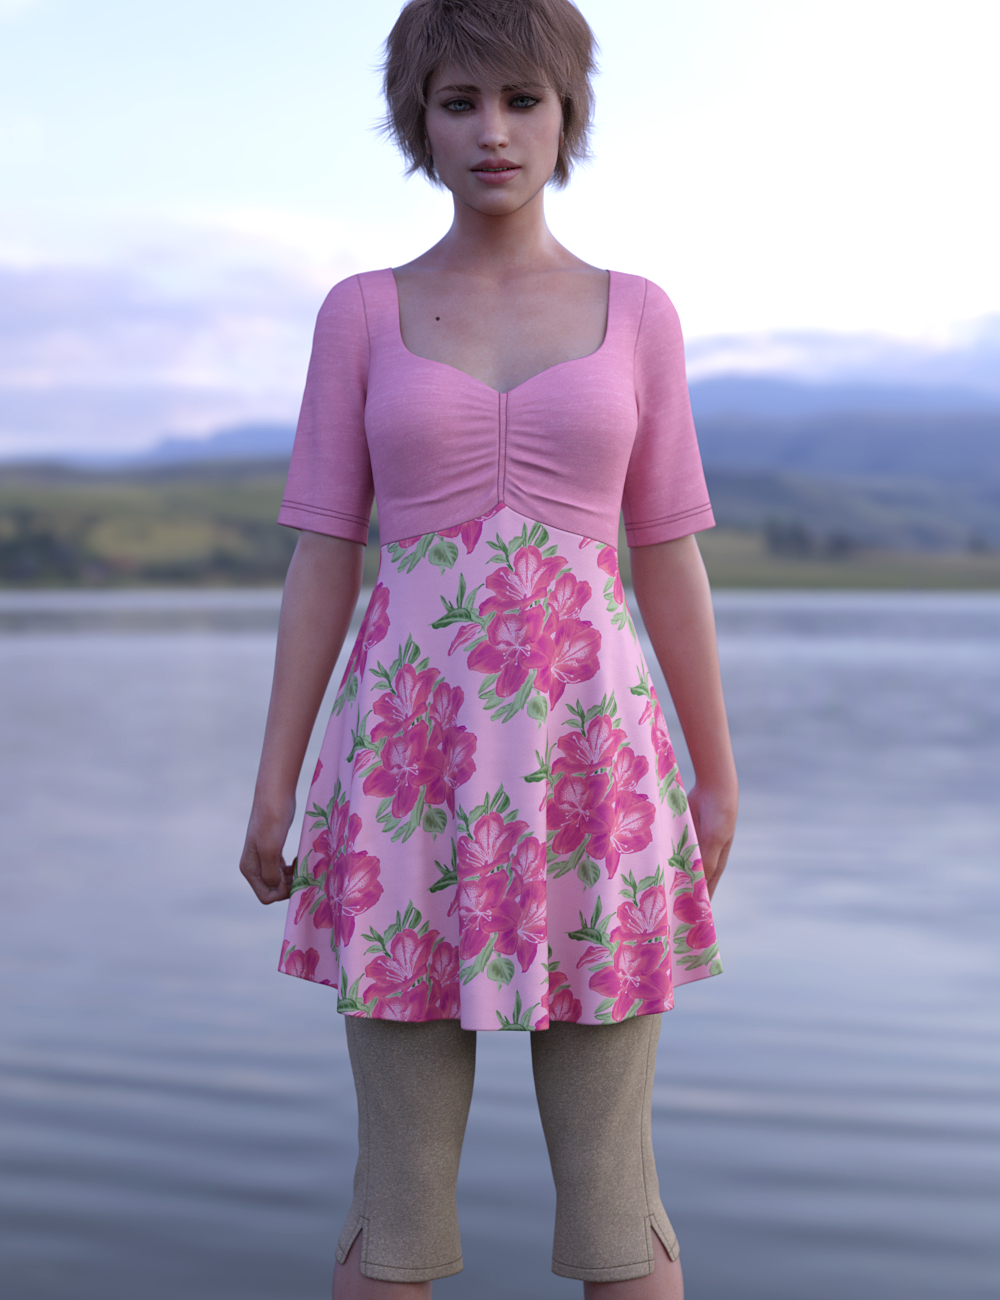 dForce Capri Outfit for Genesis 8 Females by: Leviathan, 3D Models by Daz 3D